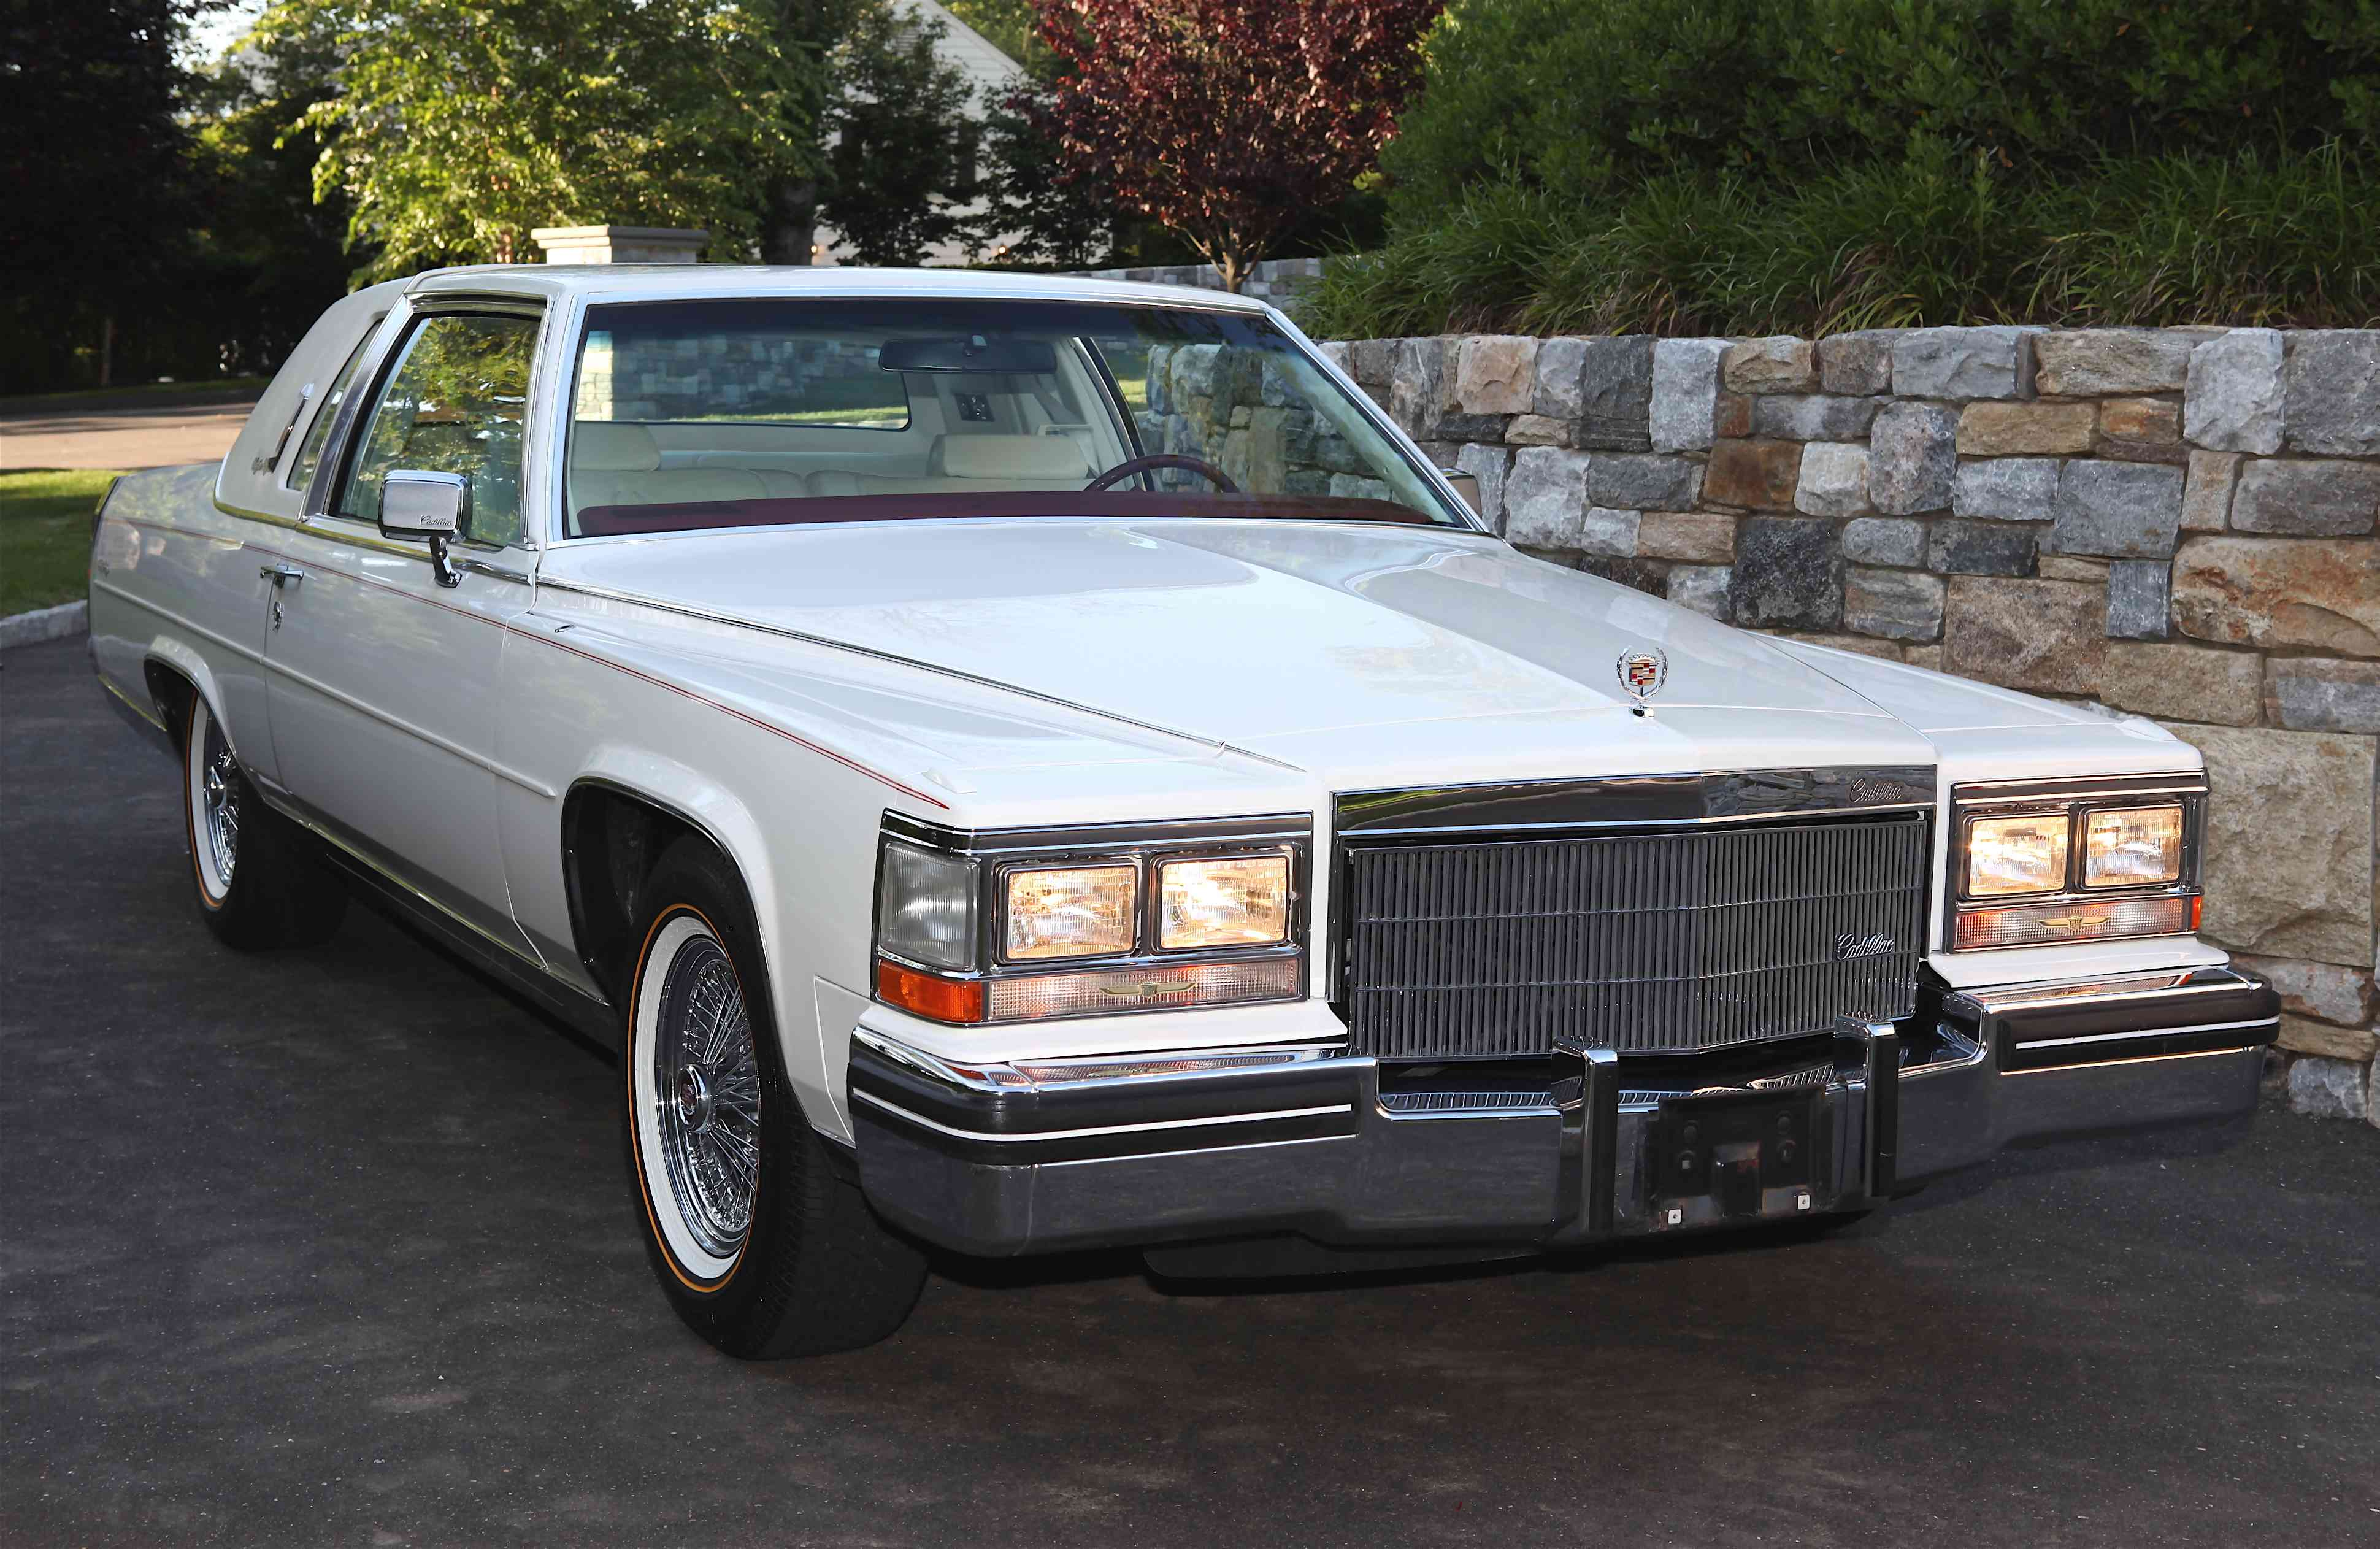 Joseph O'Connell's 1985 Cadillac Fleetwood Brougham Coupe with only